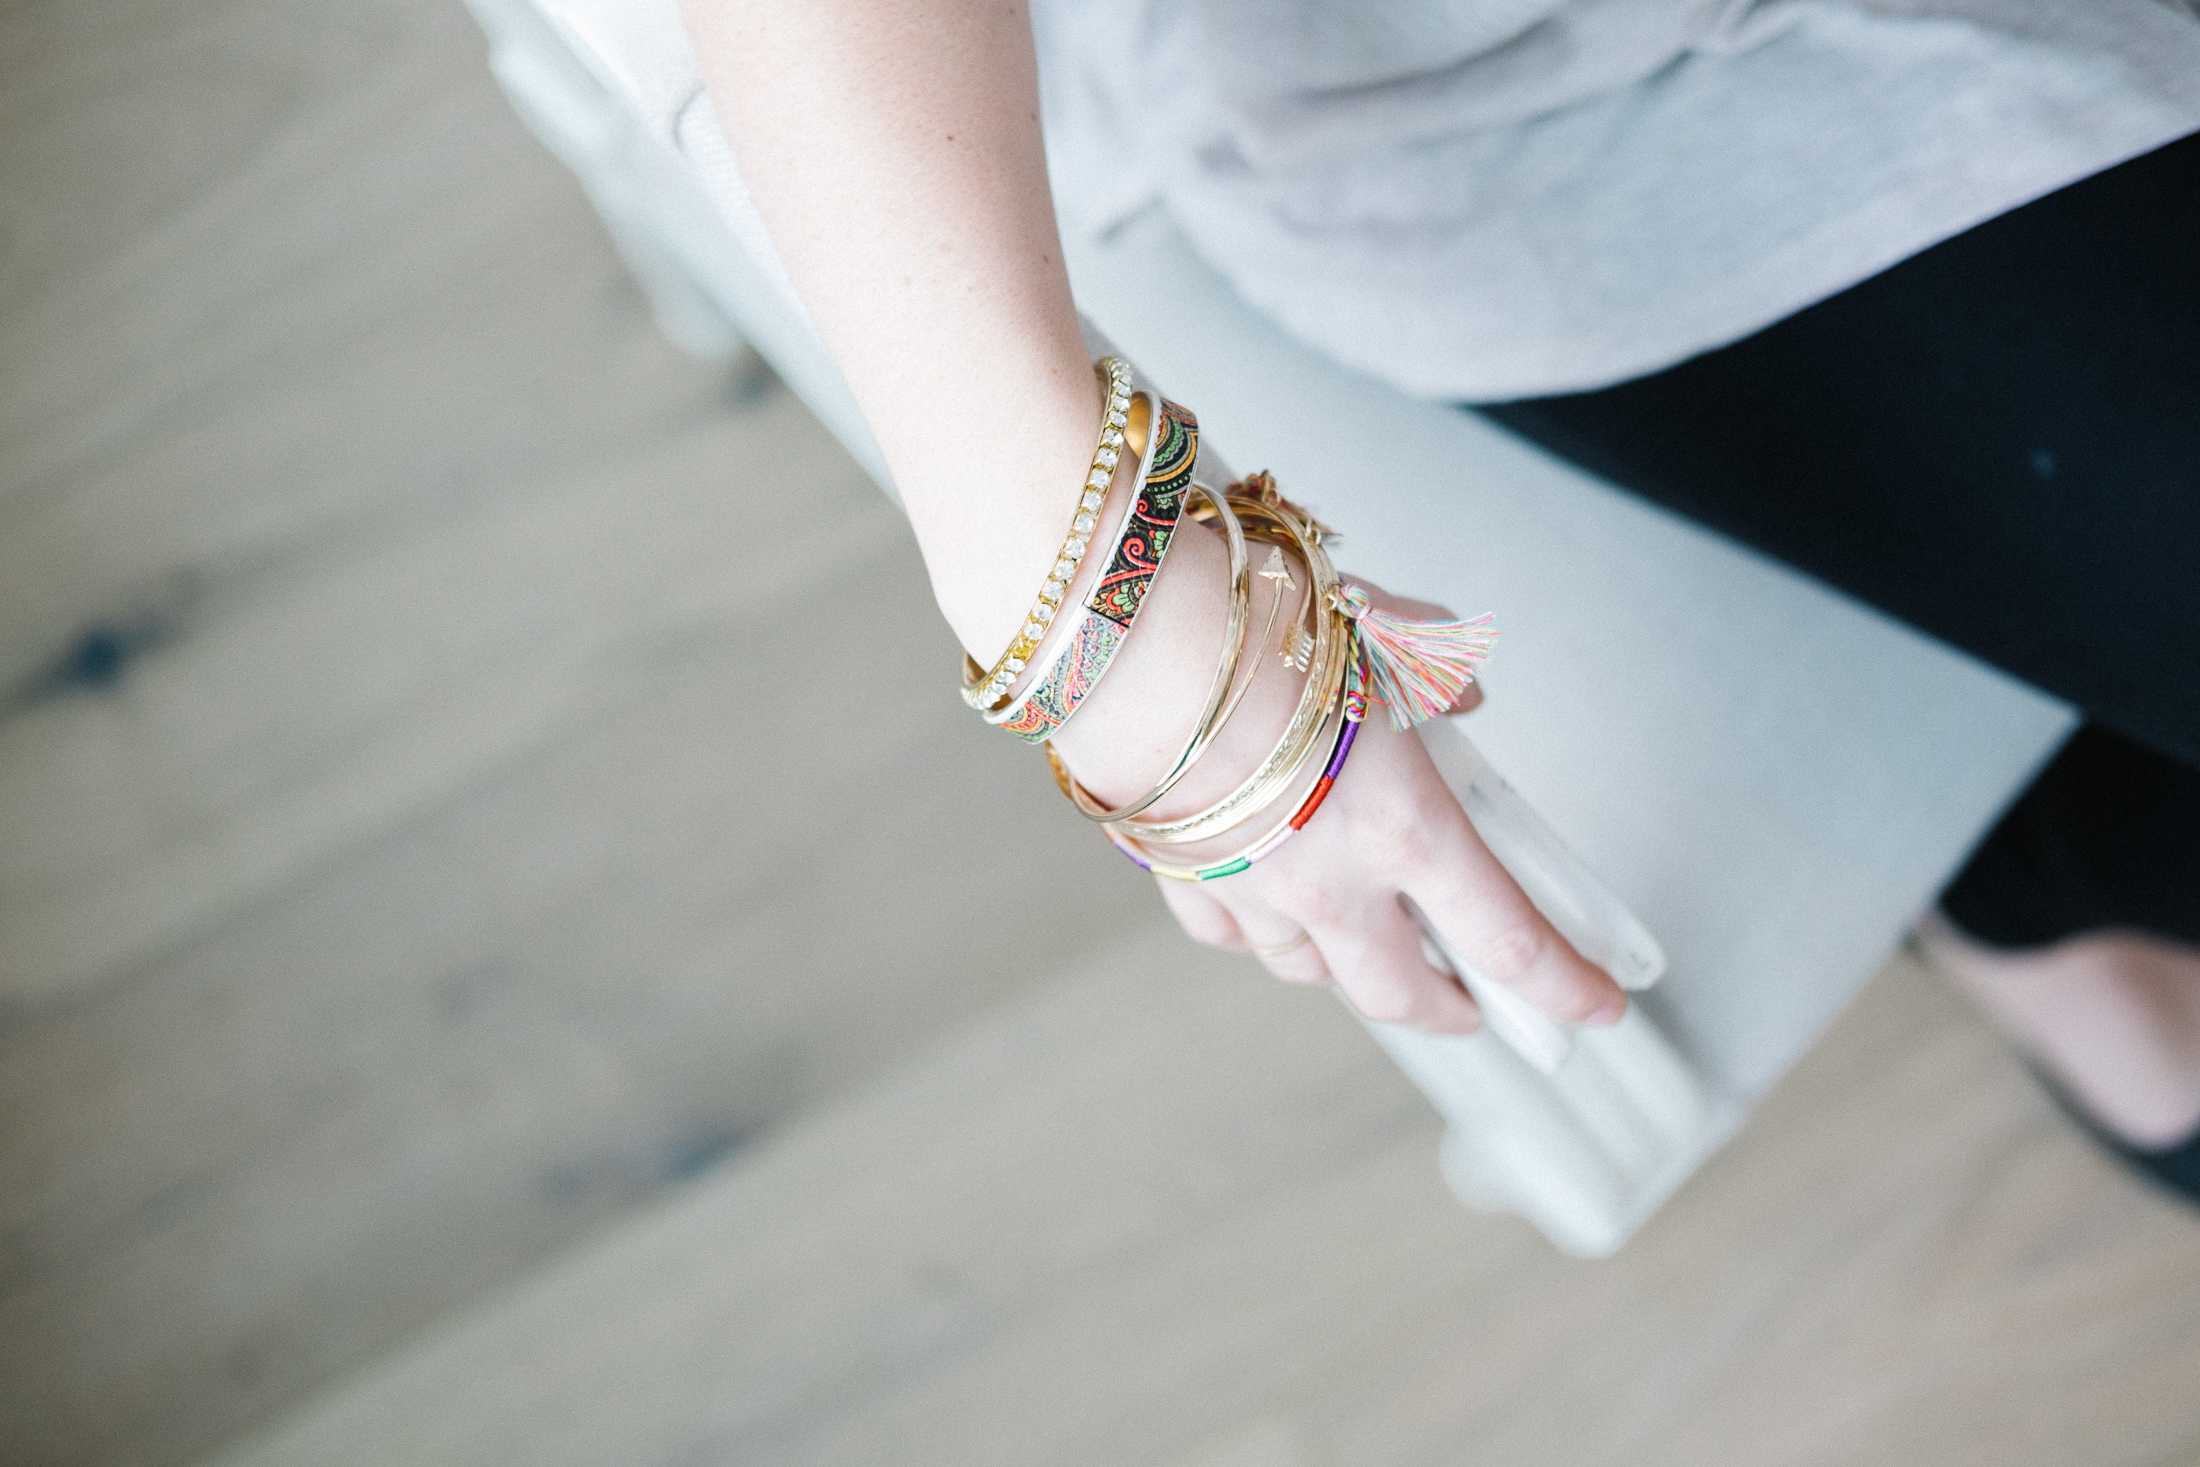 Wallpaper Girl Hd Free Download Selective Focus Photo Of Person S Hand With Gold Bangles